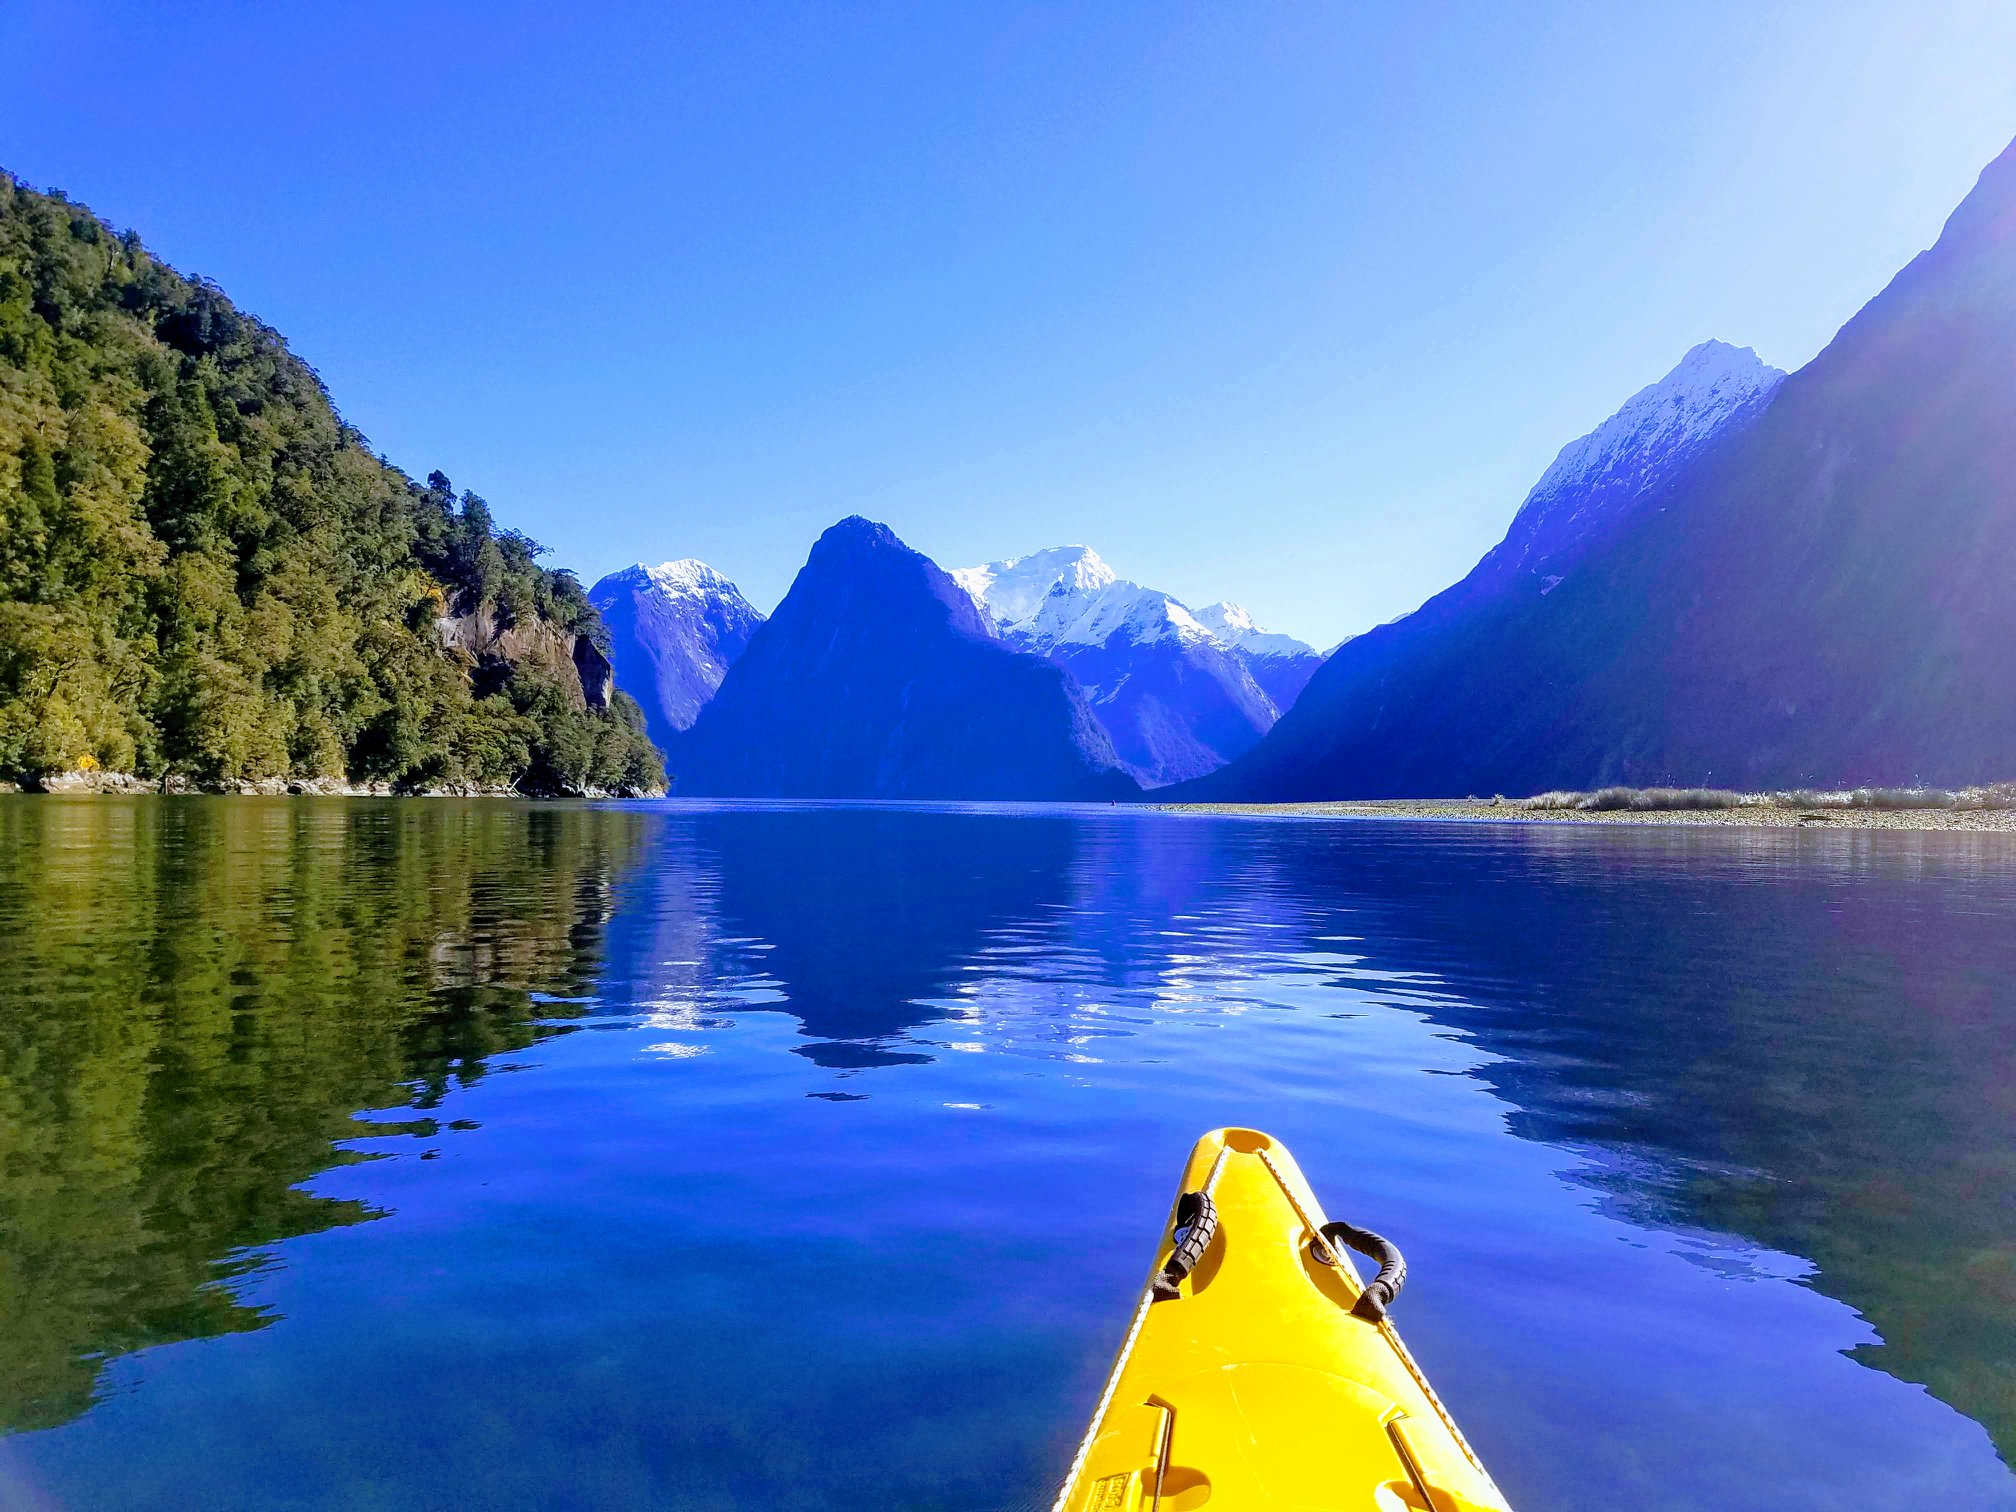 Kayak Milford Sound, Radfords on the Lake